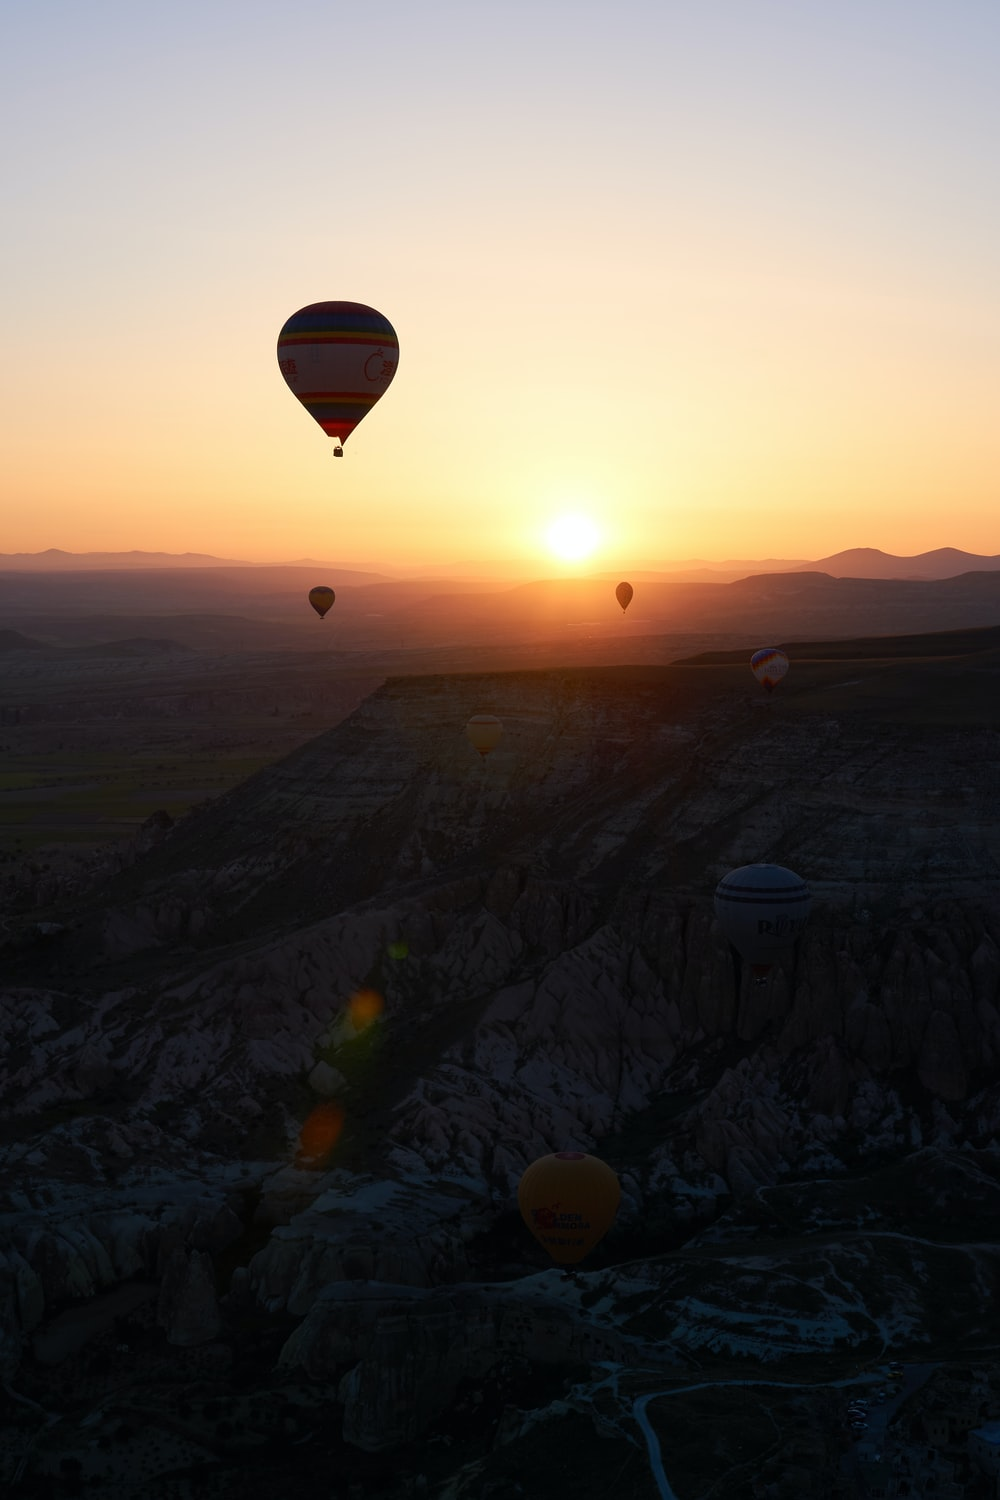 hot air balloons flying over the mountains during sunset